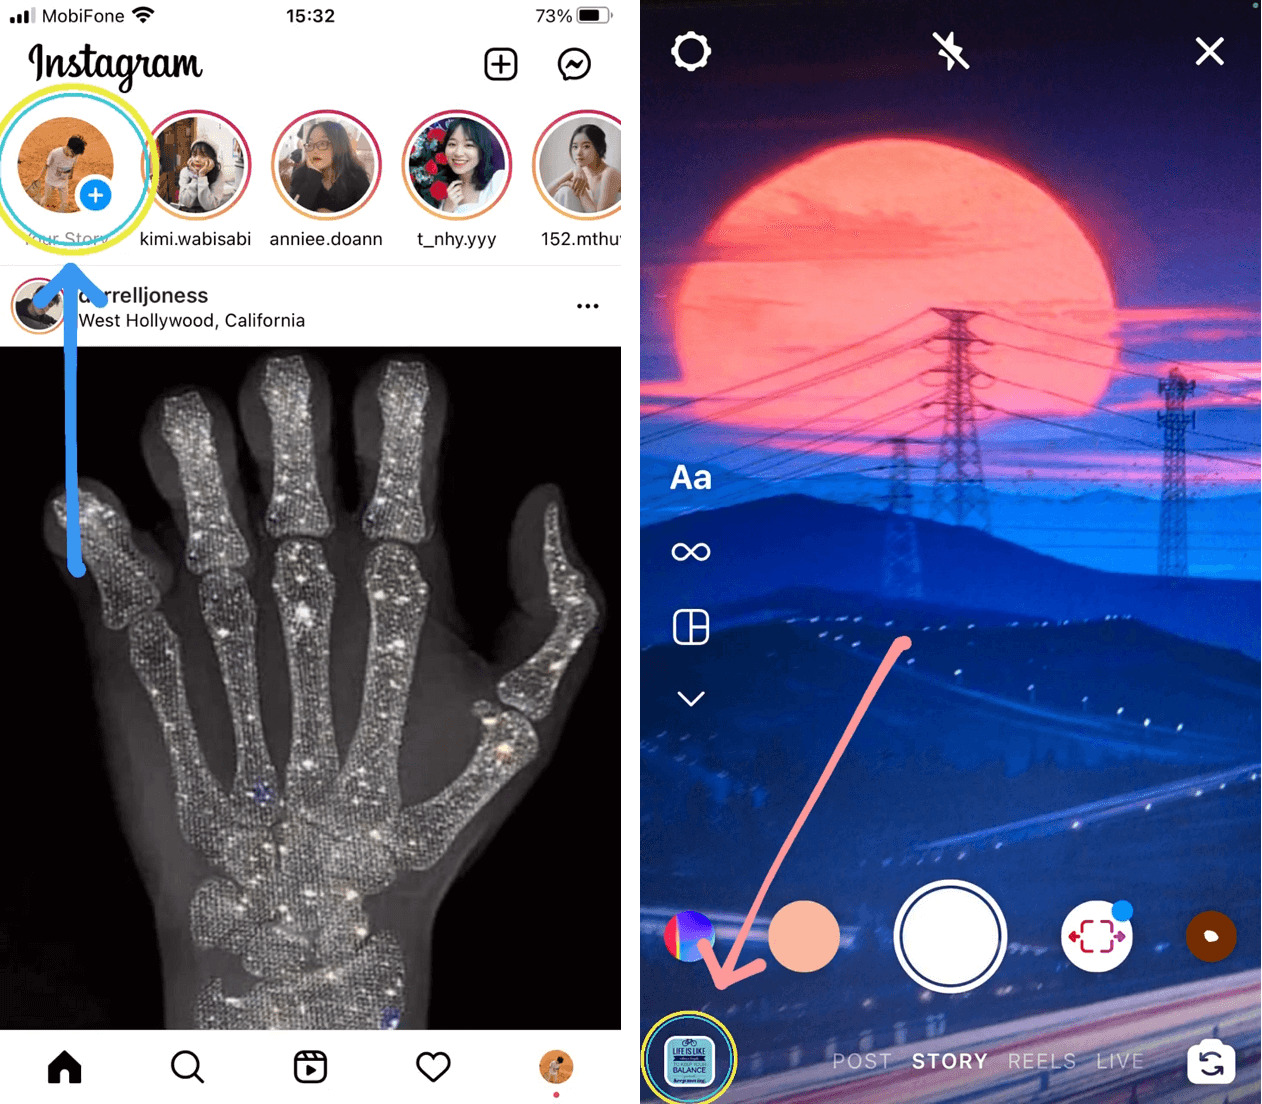 Pick the image you want to post on your story first